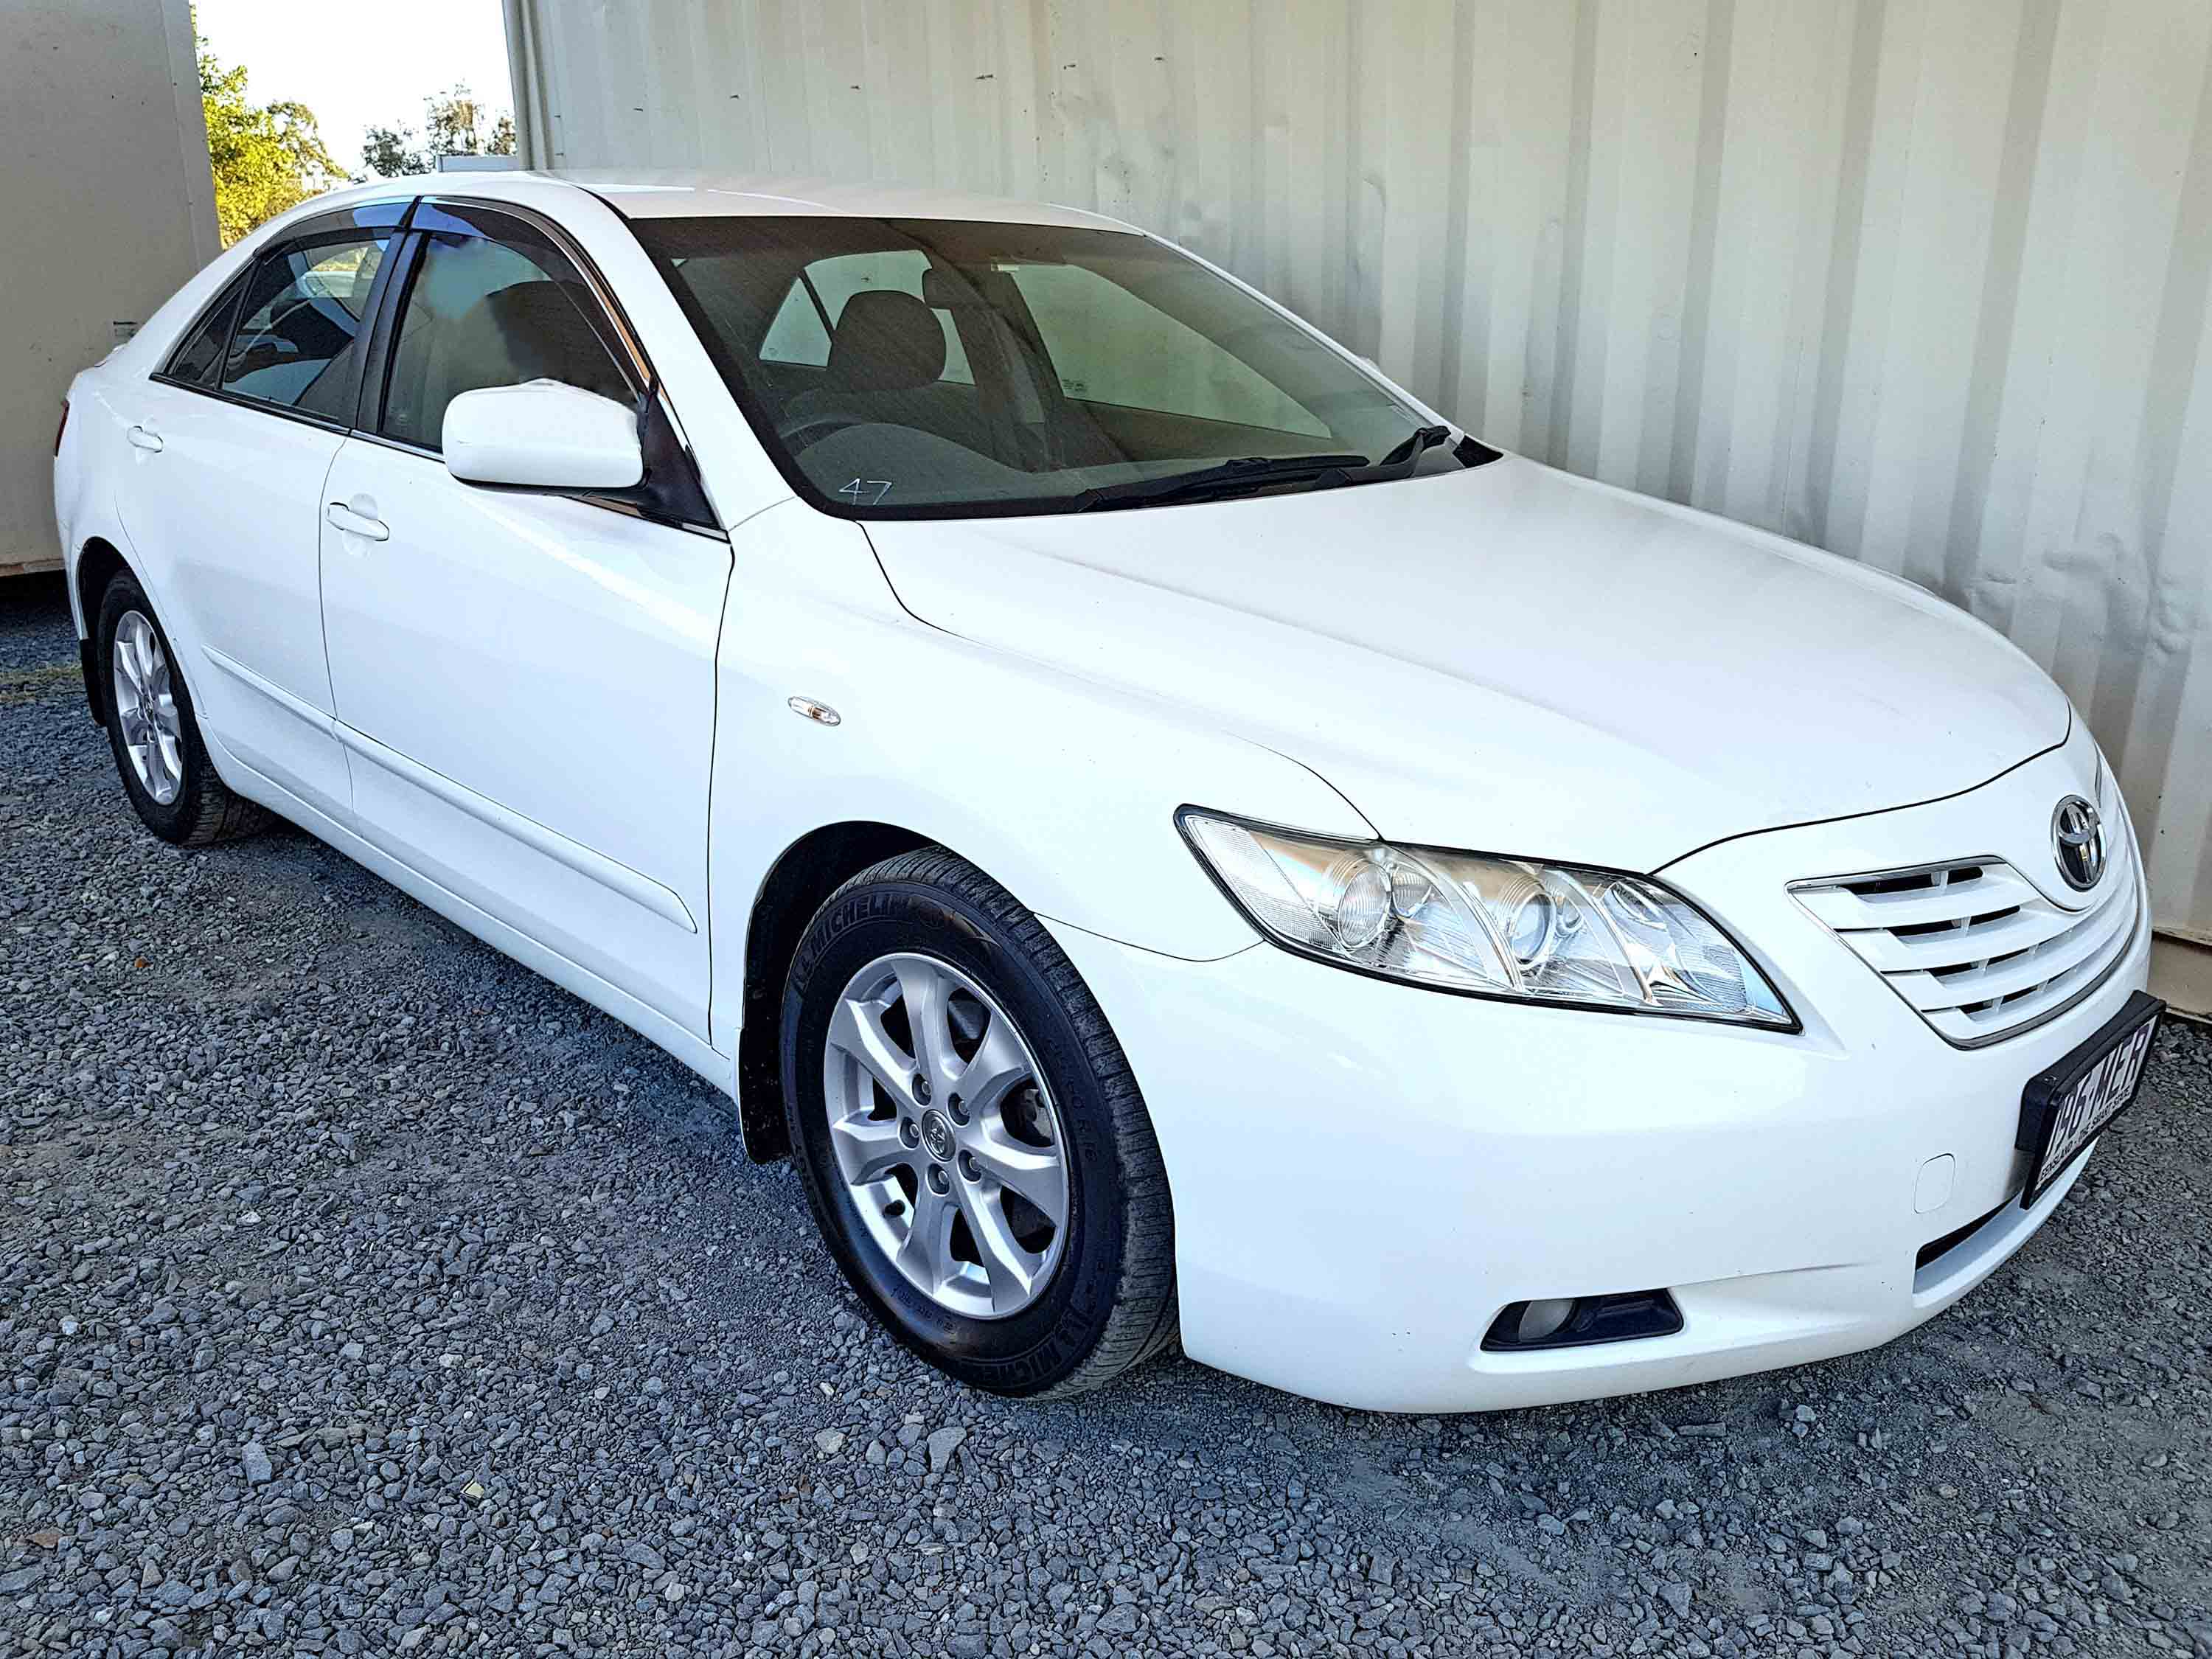 toyota camry 2006 reliability 2006 toyota camry solara specs safety rating mpg carsdirect 2006. Black Bedroom Furniture Sets. Home Design Ideas